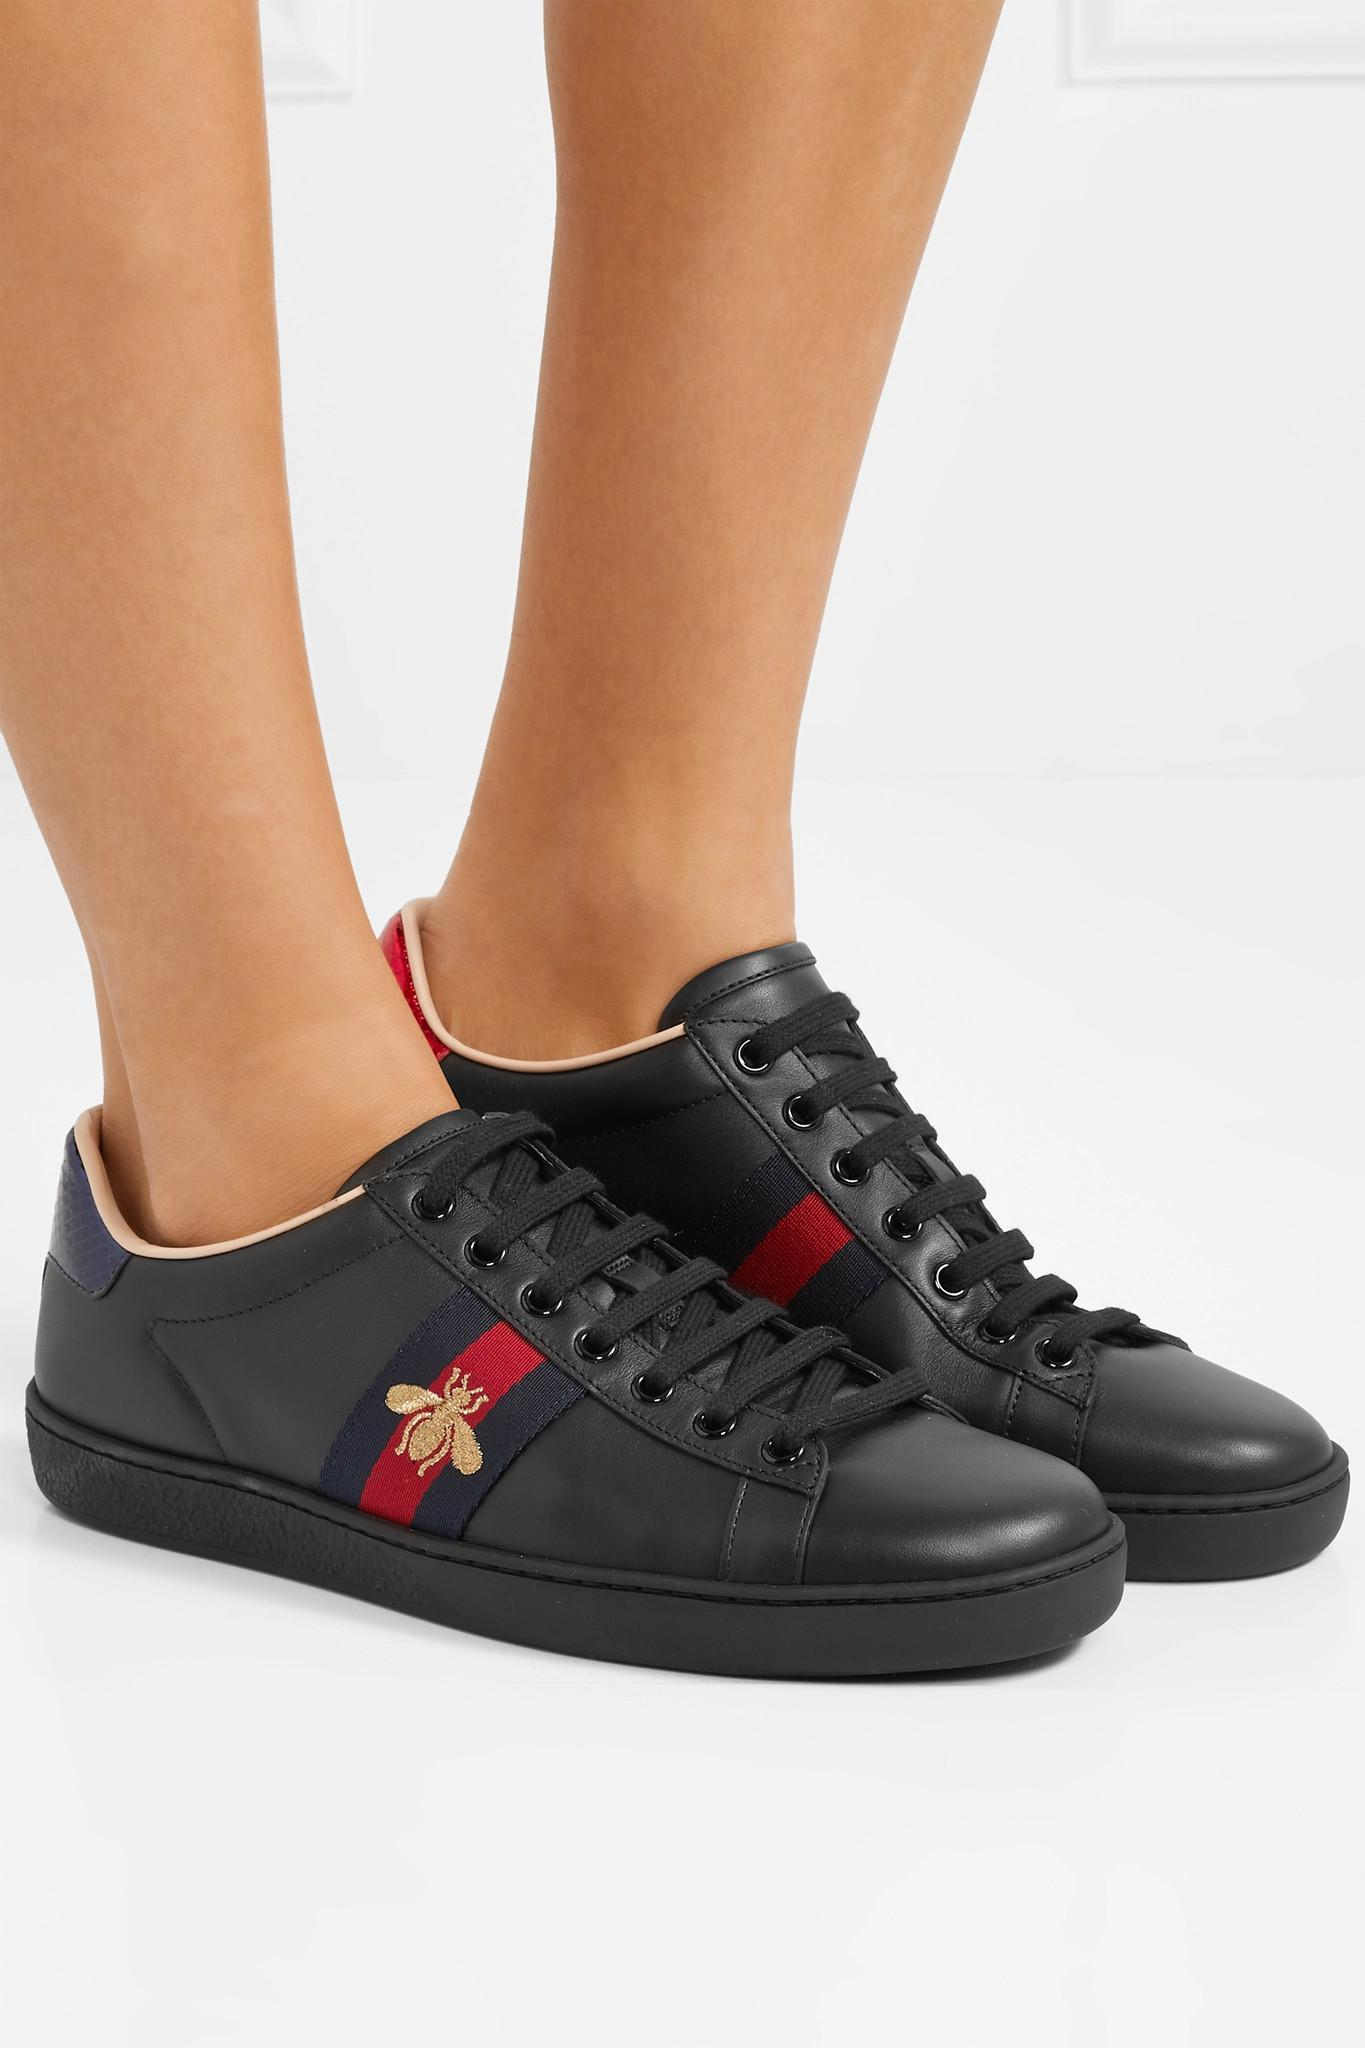 1fdb5edd891 Gucci - Black Ace Watersnake-trimmed Embroidered Leather Sneakers - Lyst.  View fullscreen